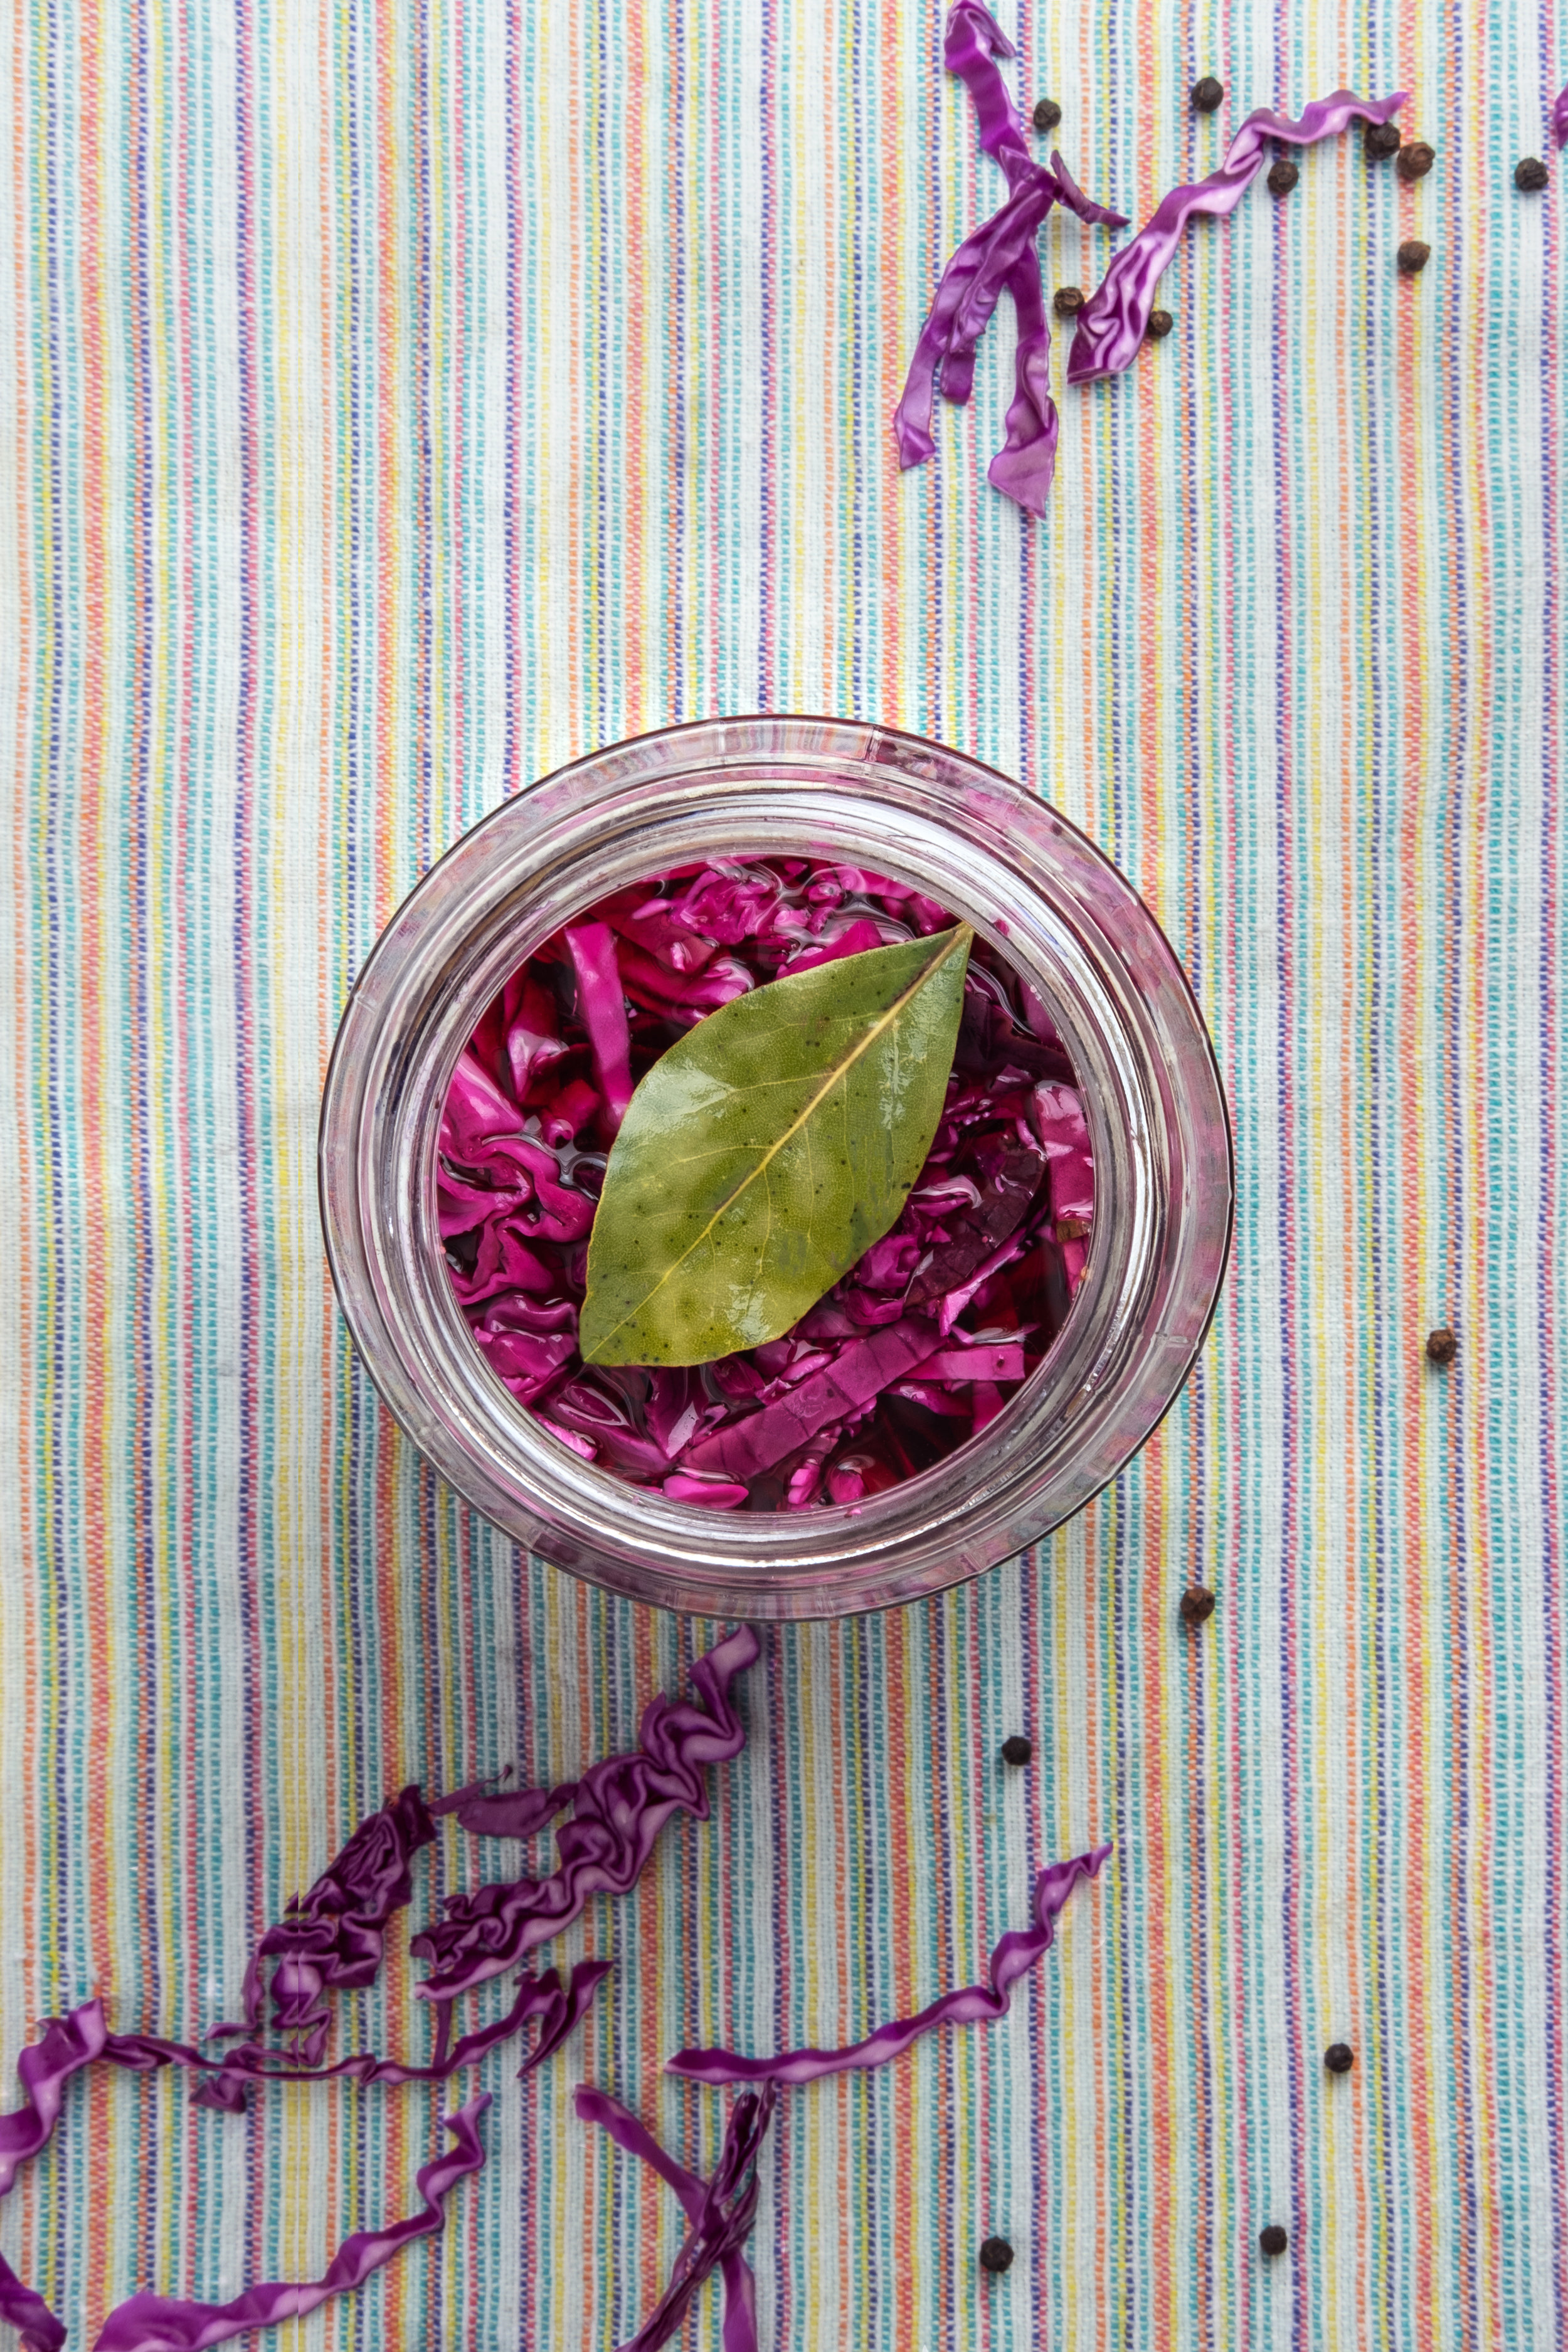 Glass jar of red pickled cabbage on a striped napkin.